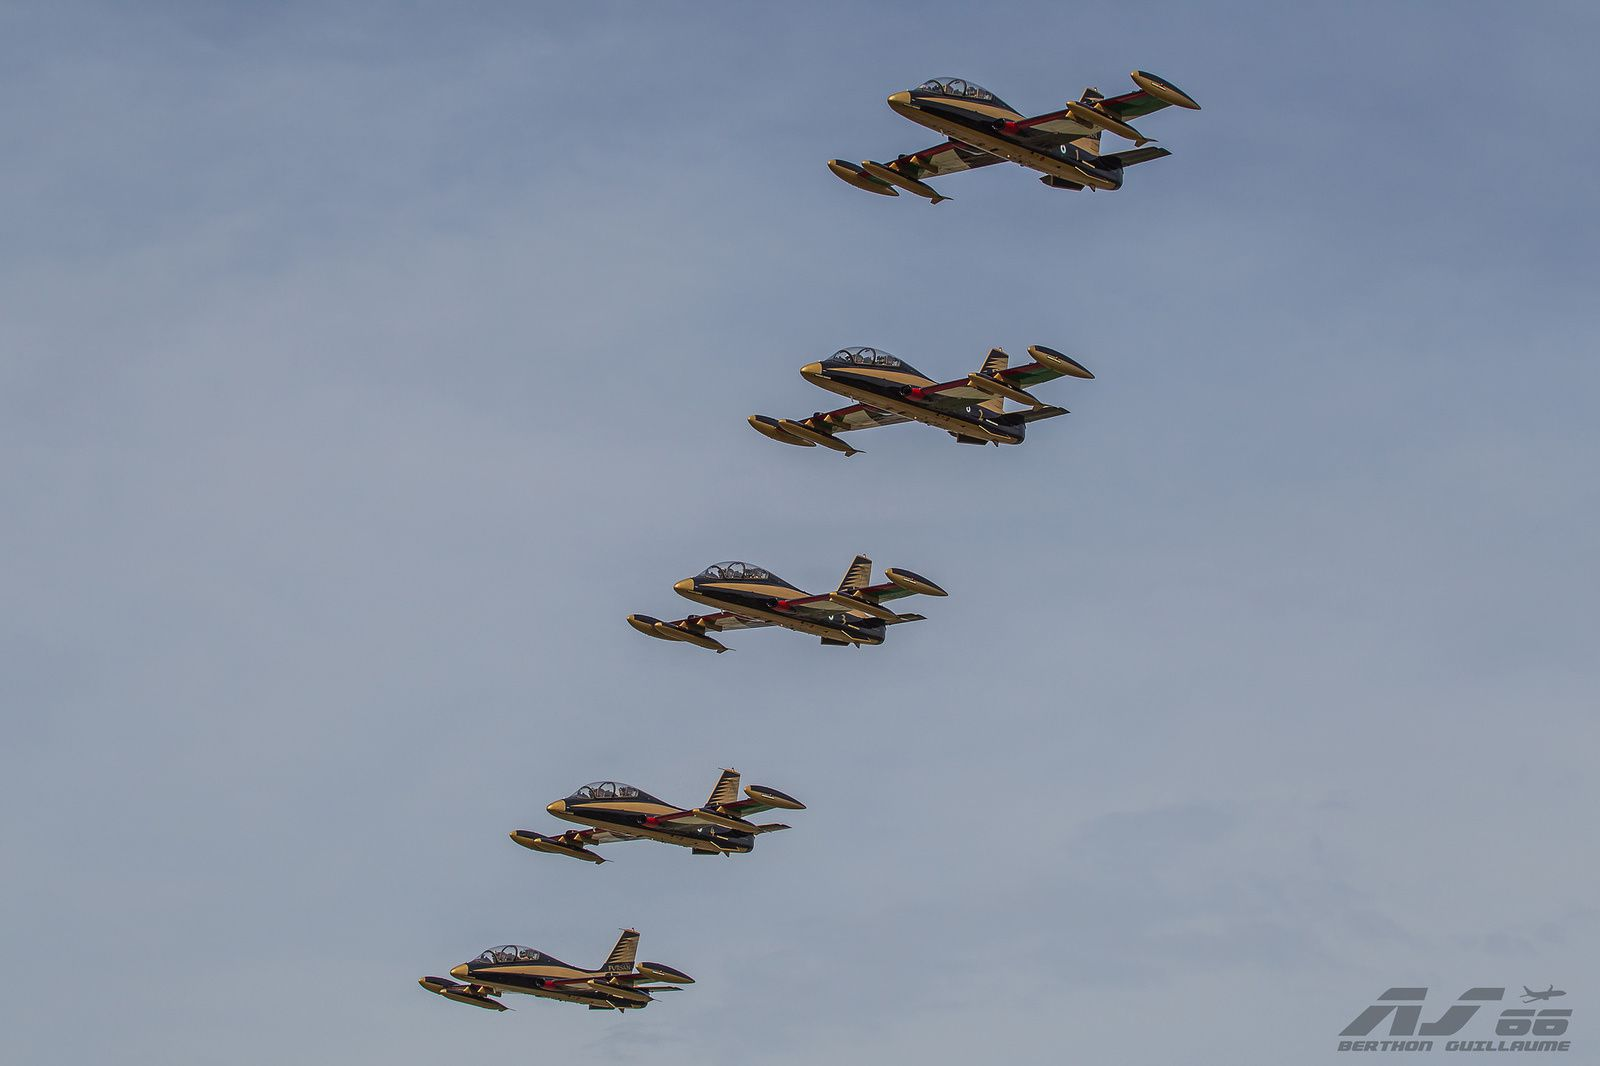 PHOTOS - La patrouille acrobatique Al Fursan des Emirats Arabes Unis se pose en France